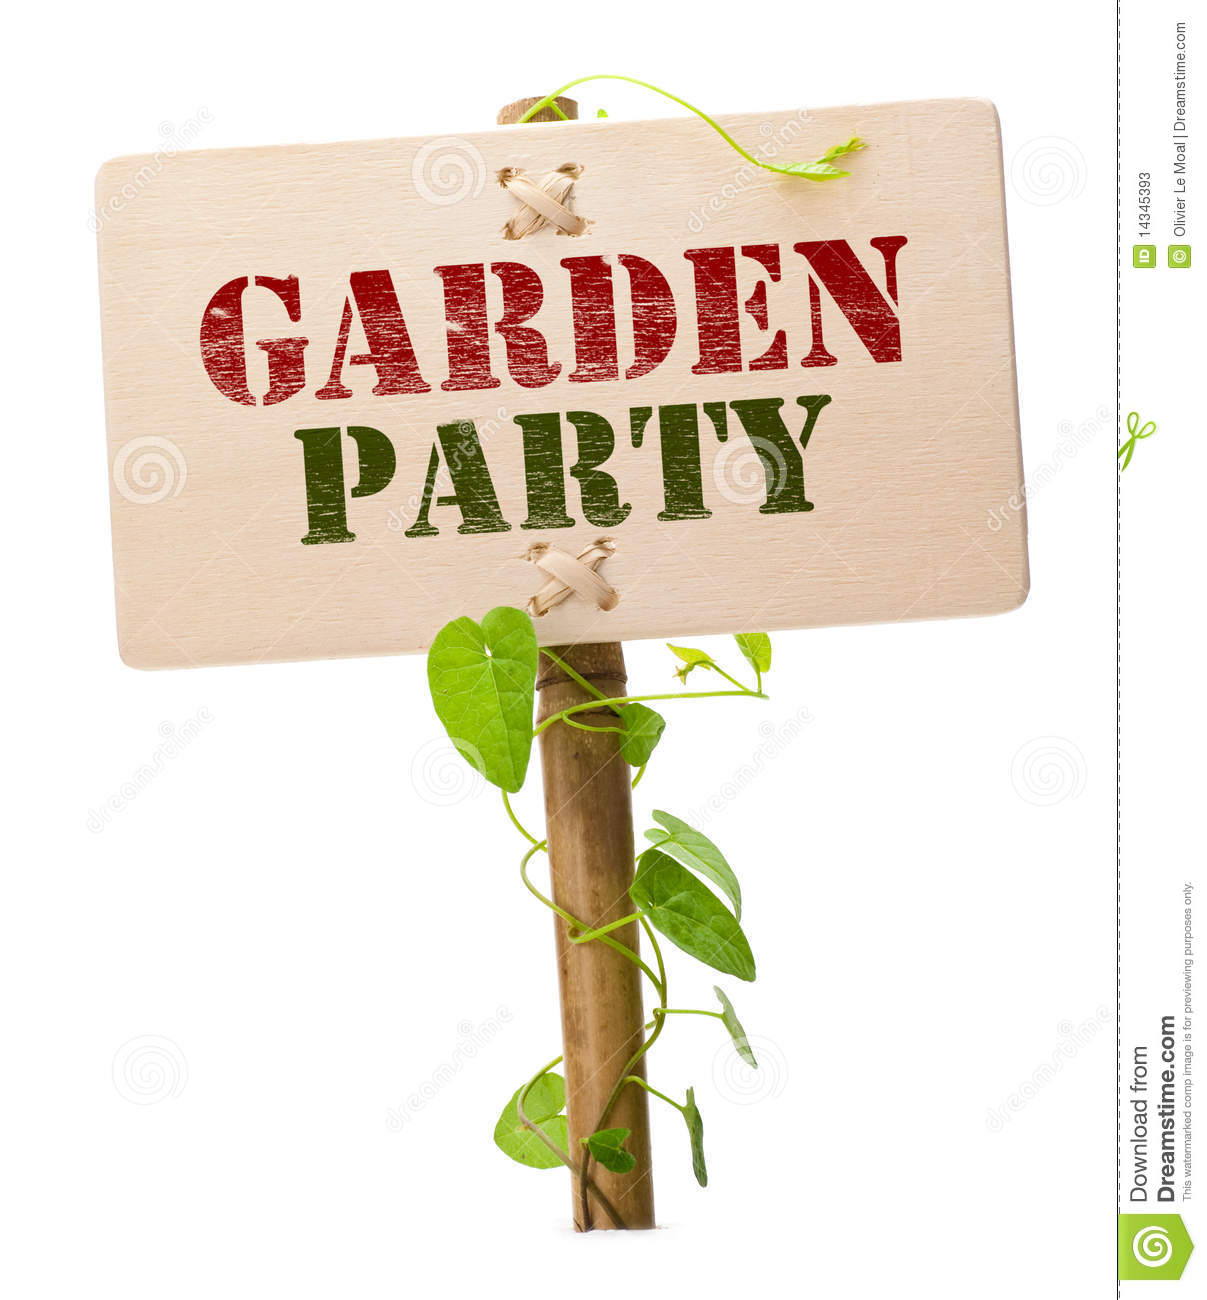 Garden Party Invitation Card Stock Photos - Image: 14345393